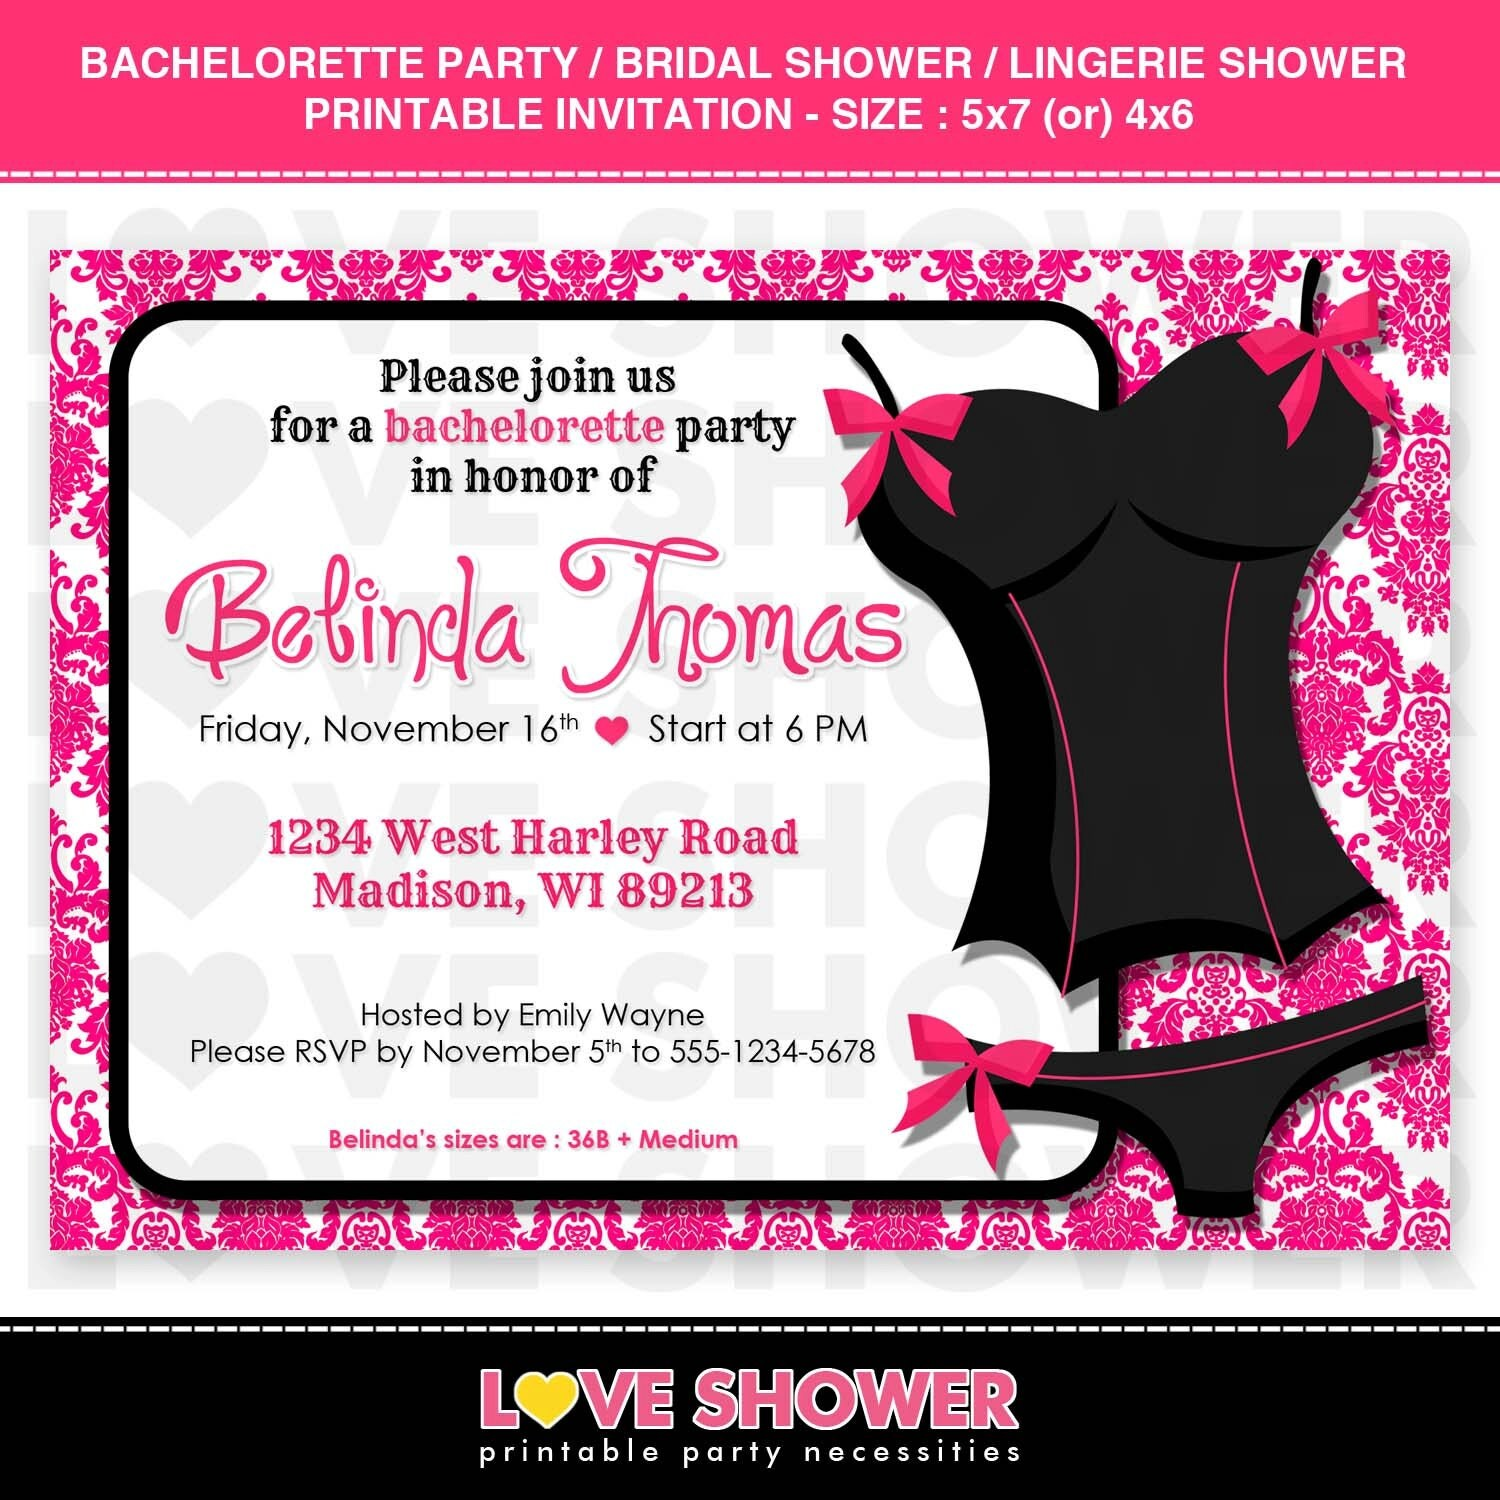 Bachelorette Party Bridal Shower Lingerie Shower Invitation – Bridal Shower and Bachelorette Party Invitations